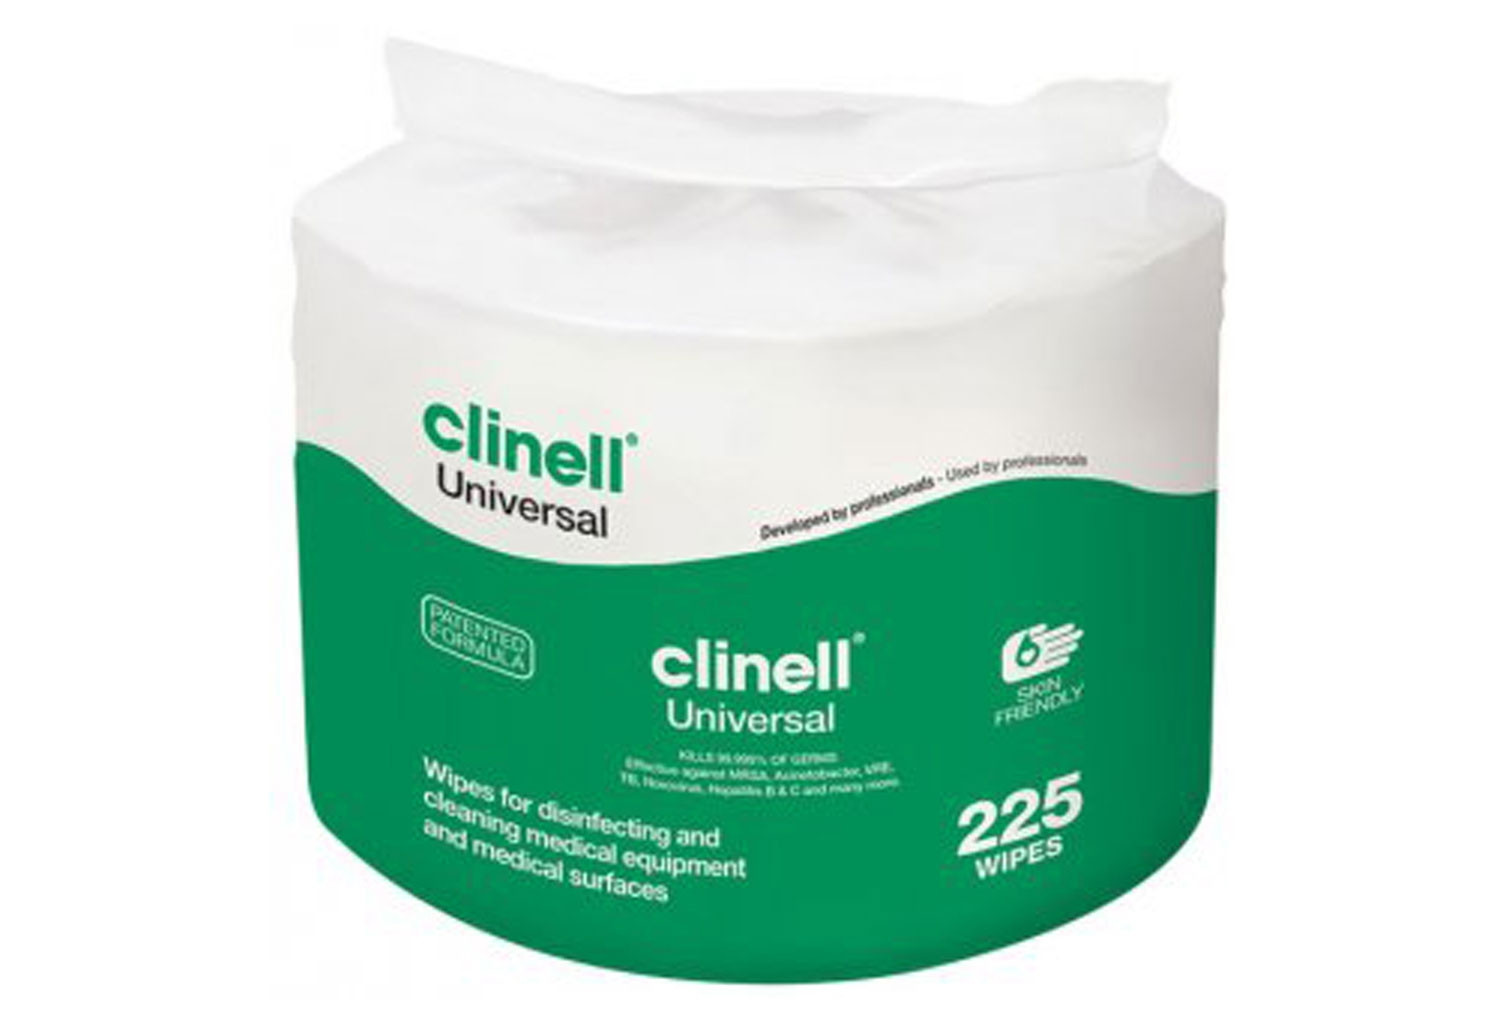 Refill For Bucket Of Clinell Universal Wipes (225 Wipes) - NHS Approved NHSSC VJT192